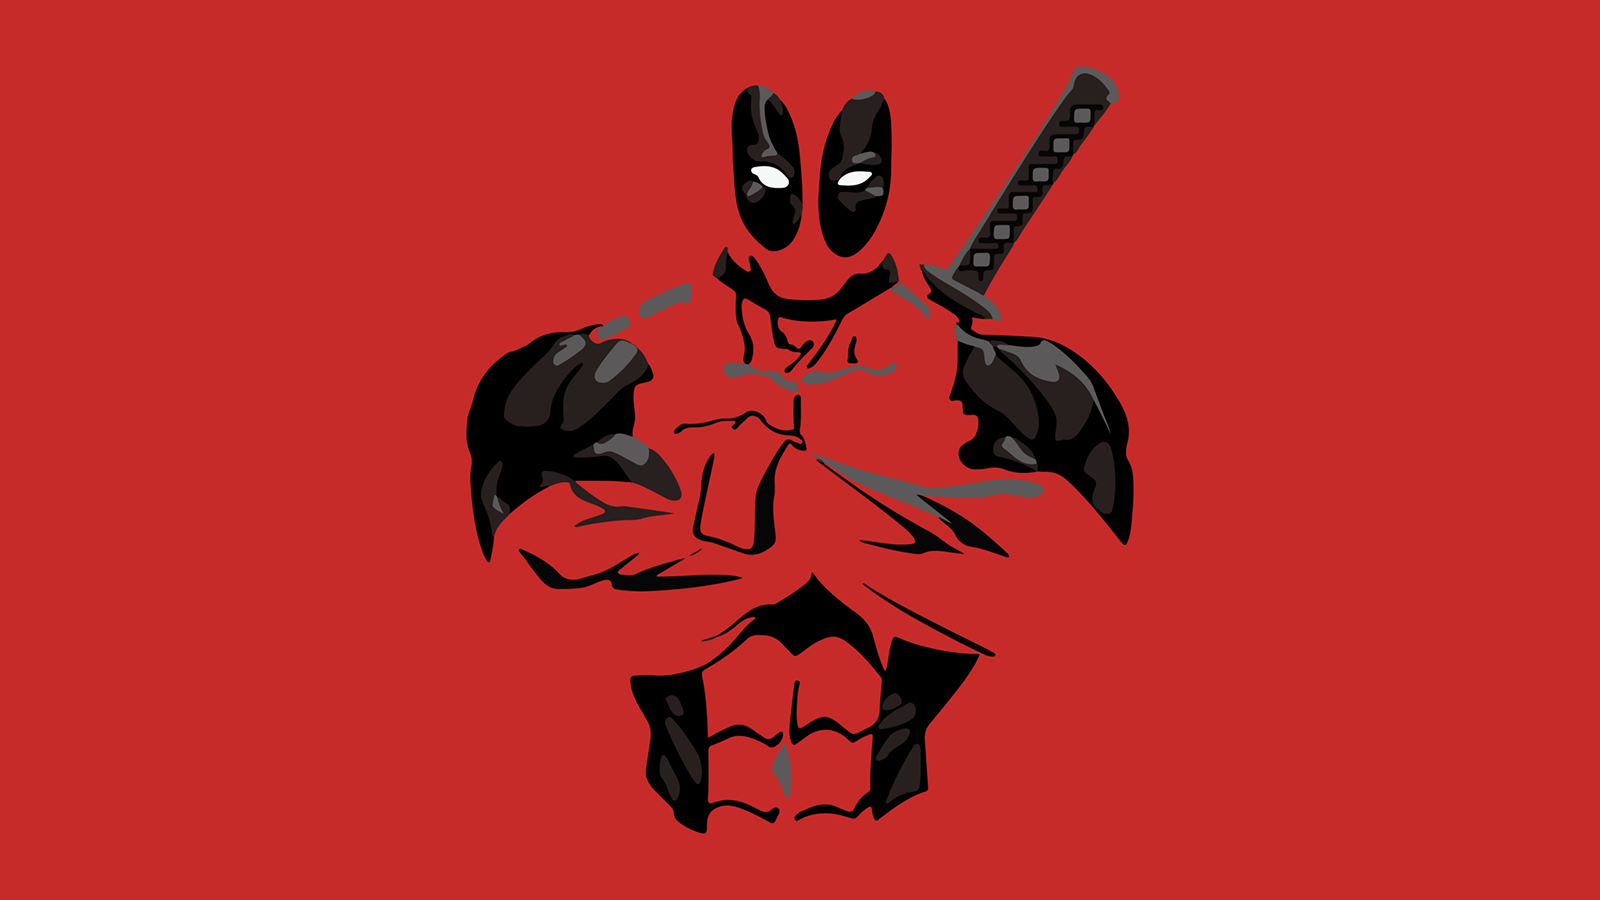 Deadpool Hd Wallpaper For Android Phone